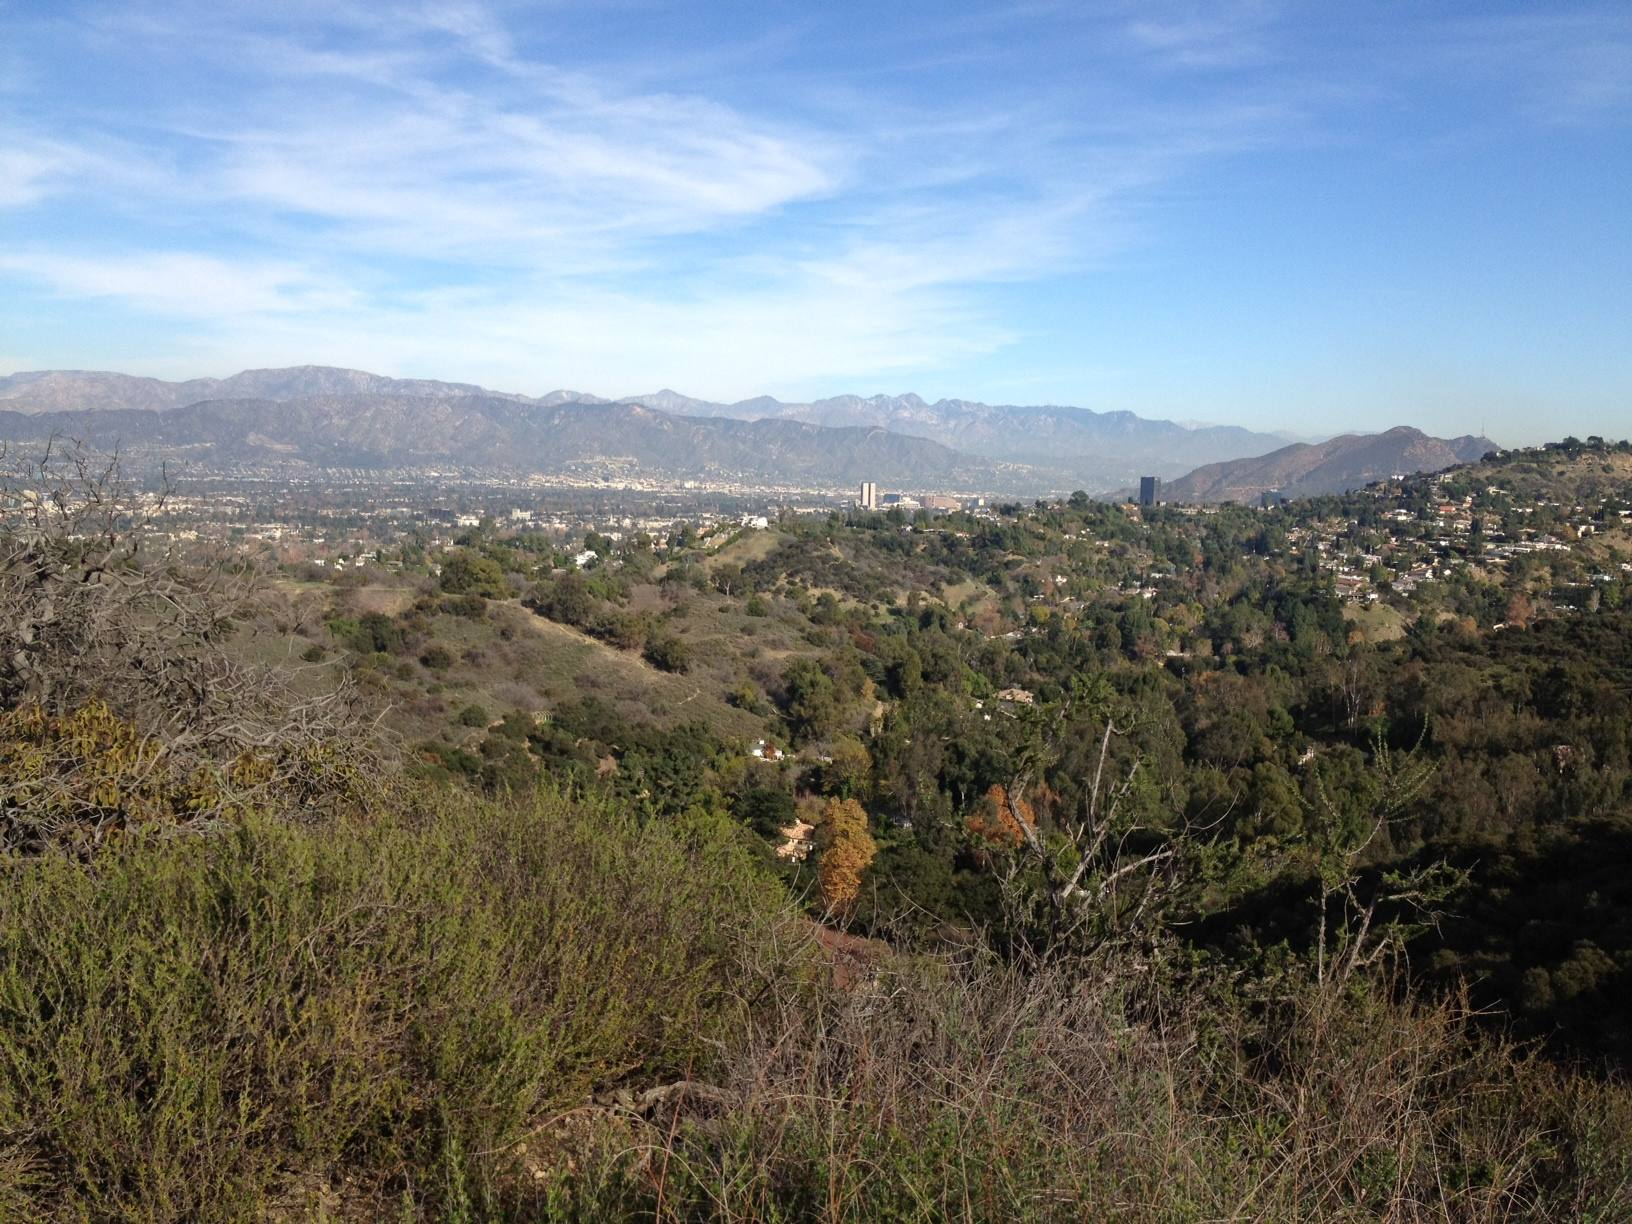 Studio City viewed from TreePeople